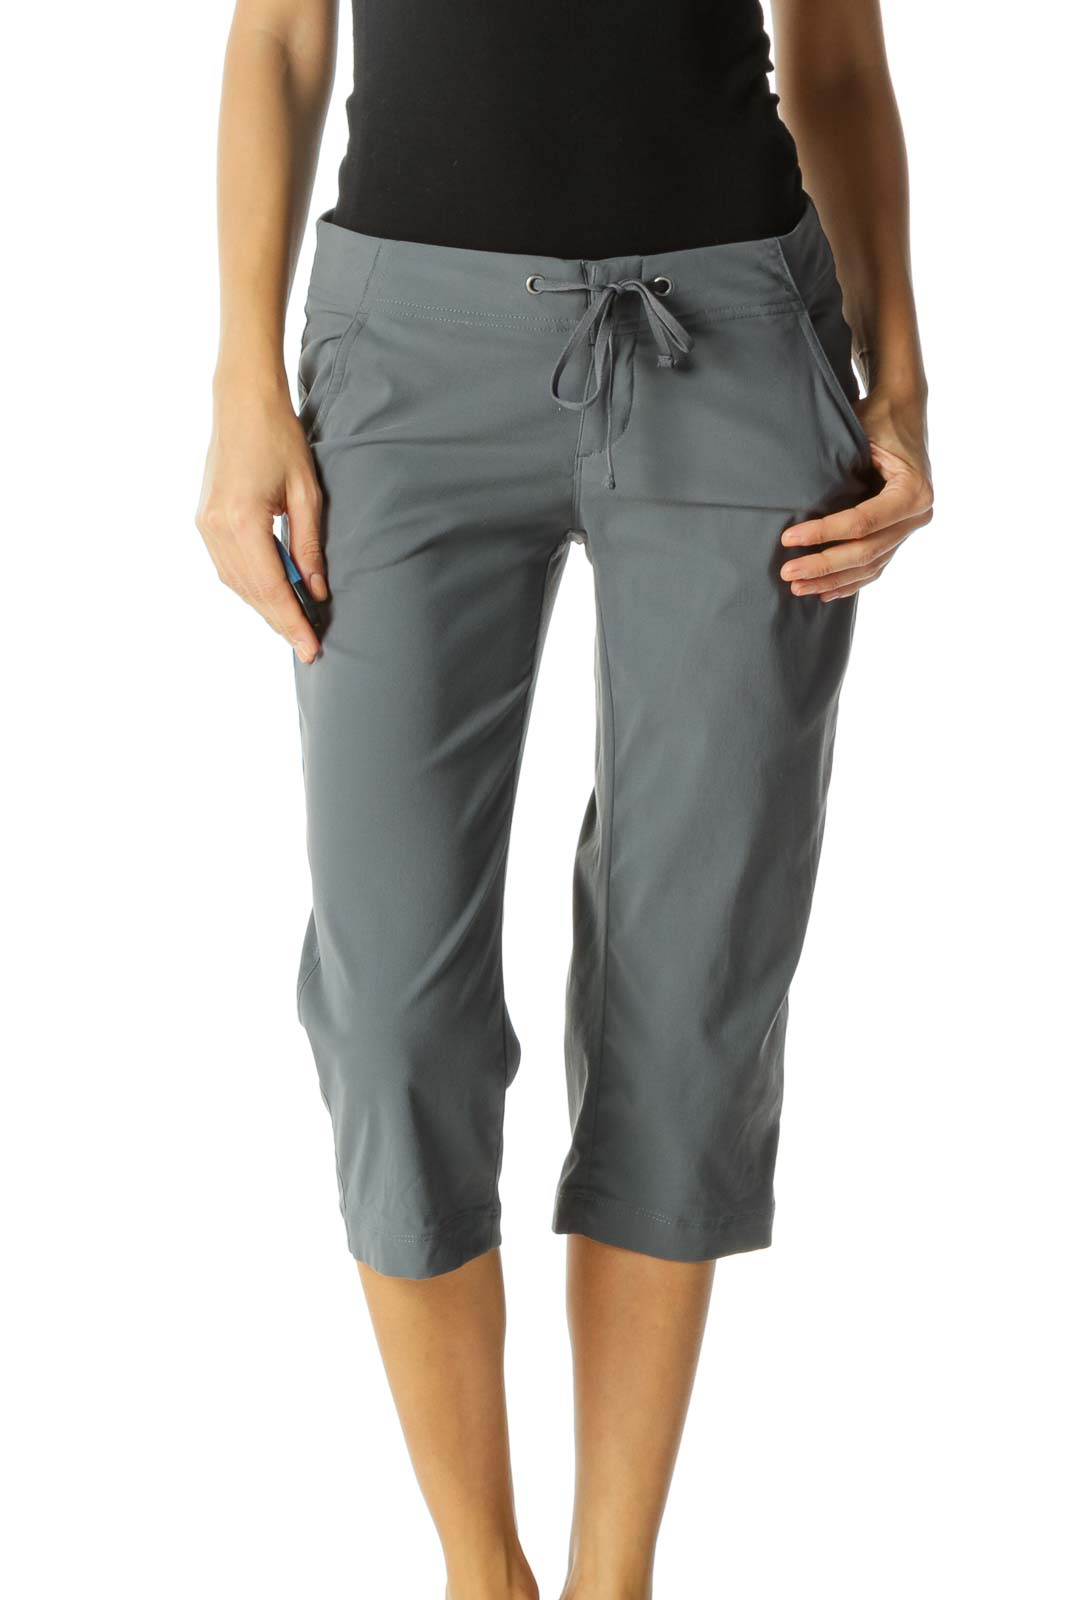 Gray Pocketed Drawstring Stretch Active Cropped Pants Front